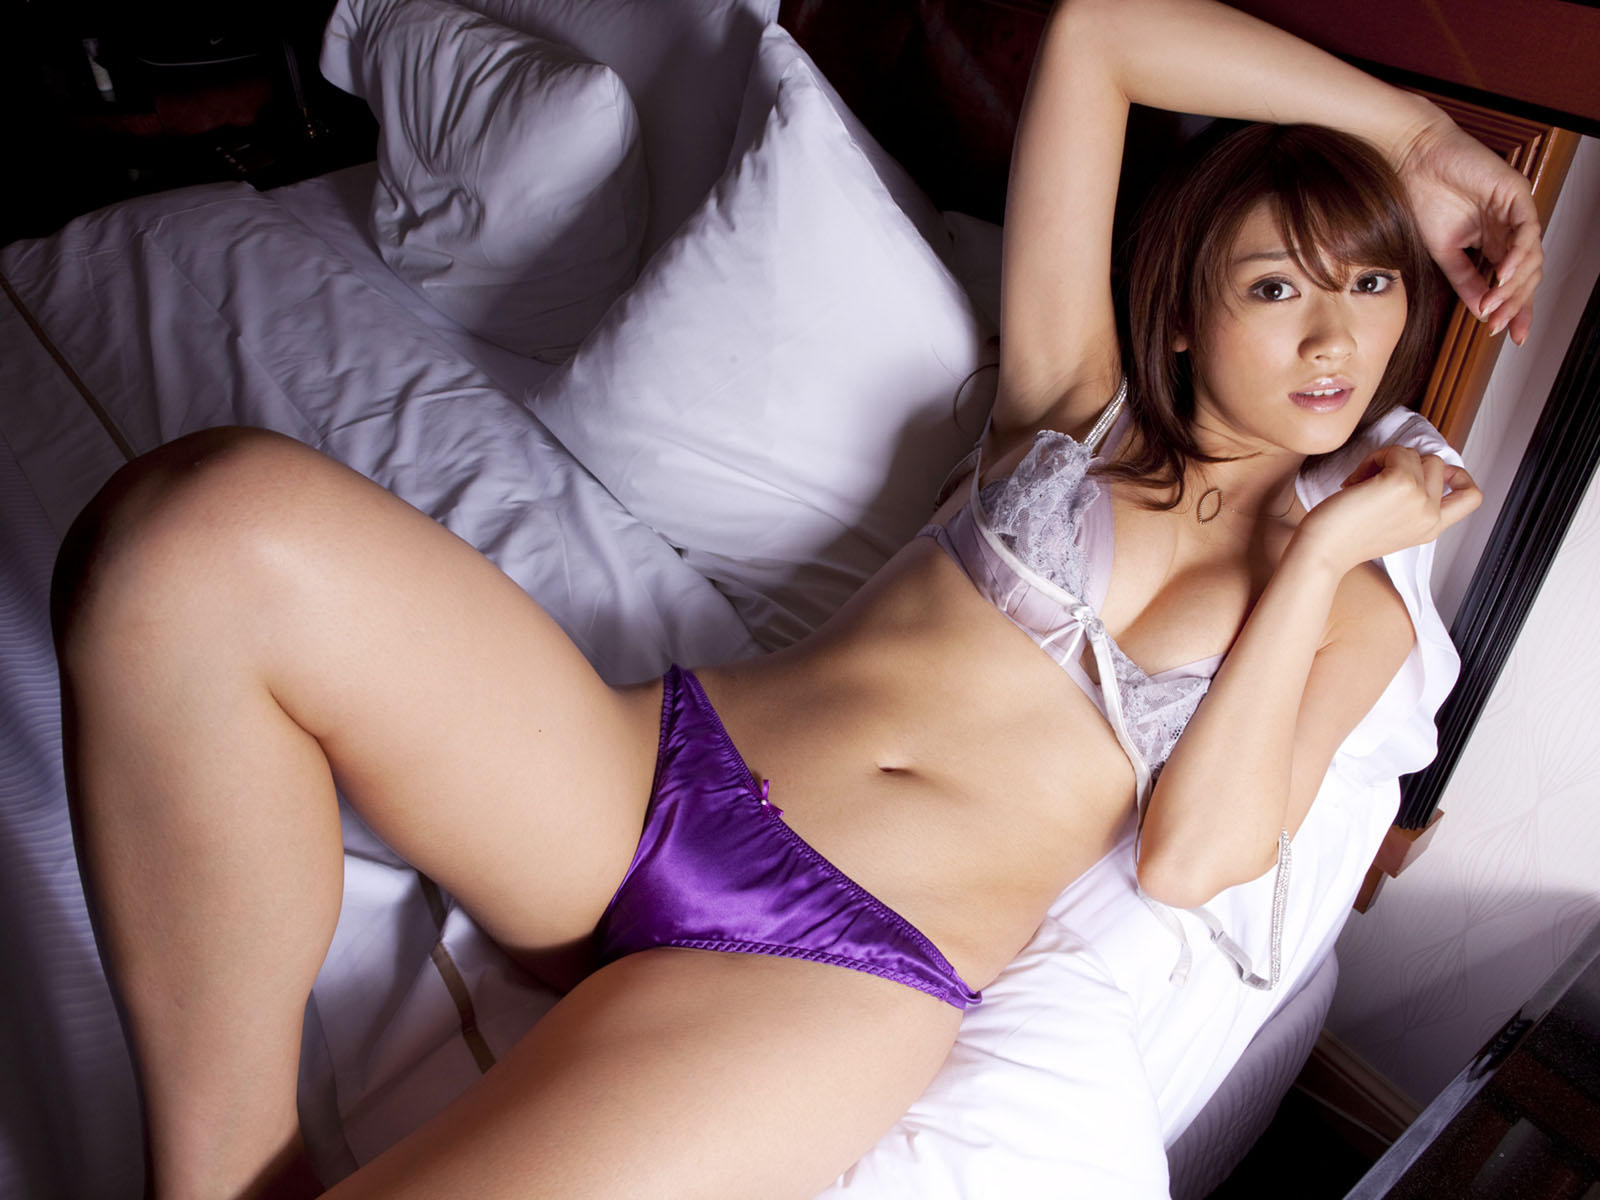 Asian Cute Idol Spicy Chinese Girls Hq Wallpapers